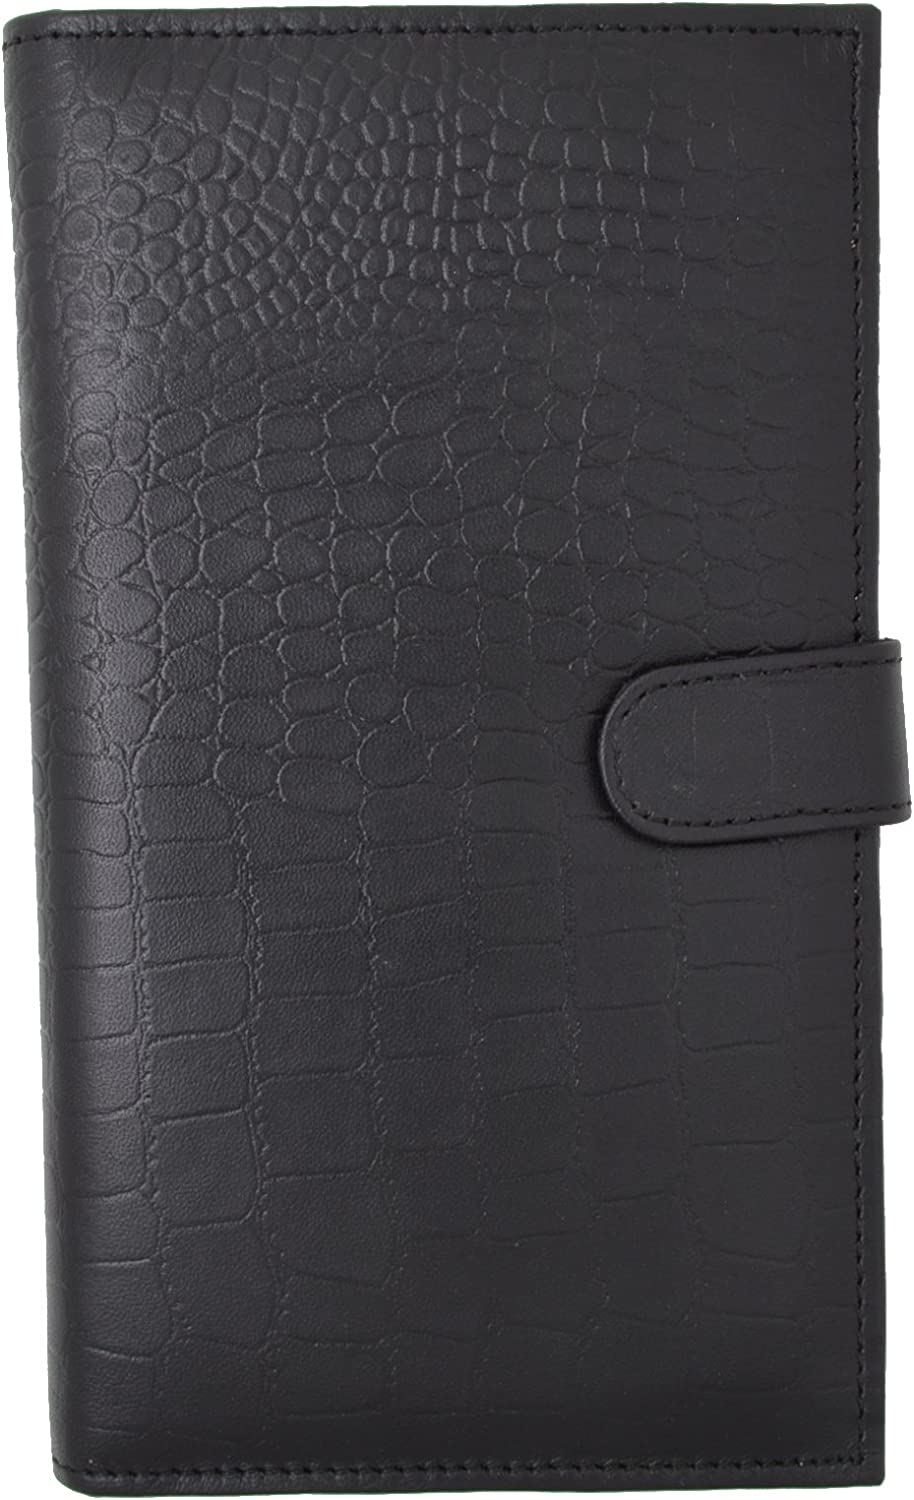 Marshal Bifold Leather RFID Blocking Wallet For Men & Women | Genuine Leather Holder With 19 Slots, 2 Bill Compartments & ID Window For Credit/Debit Cards, Money, Driver's License (Croco Black)